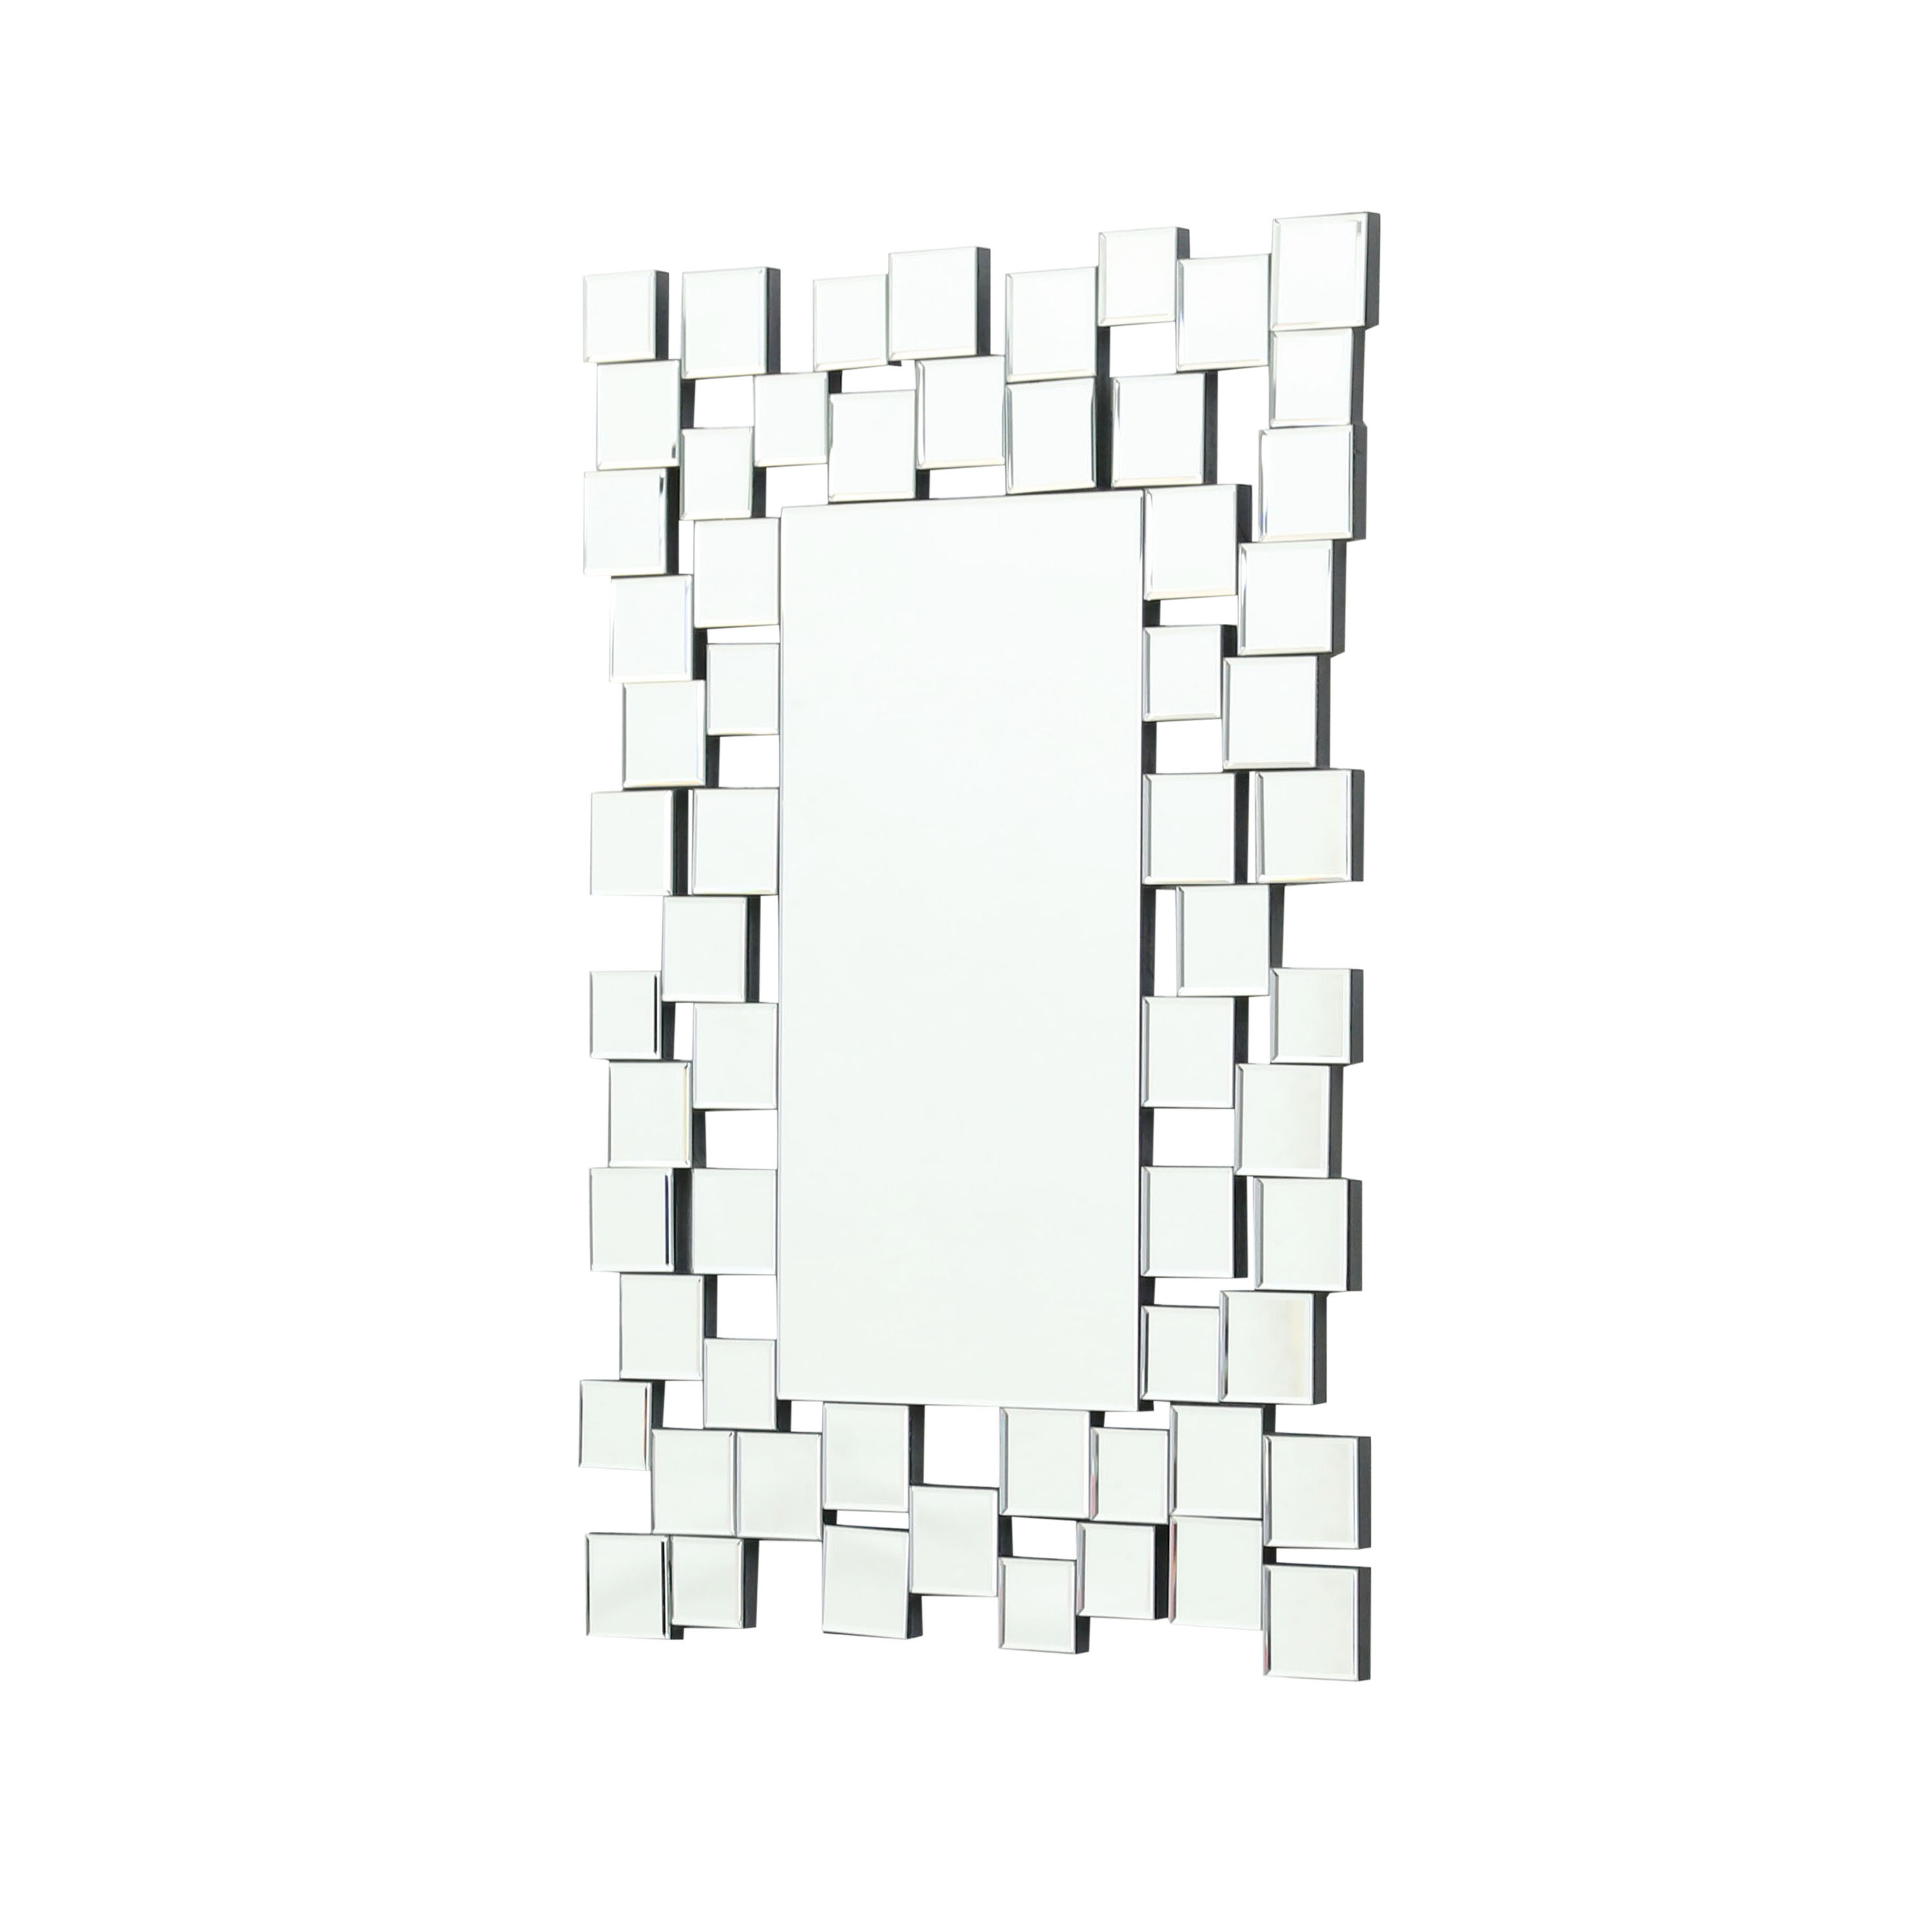 Brayden Studio Modern & Contemporary Accent Wall Mirror Pertaining To Most Recent Pennsburg Rectangle Wall Mirrors (View 15 of 20)